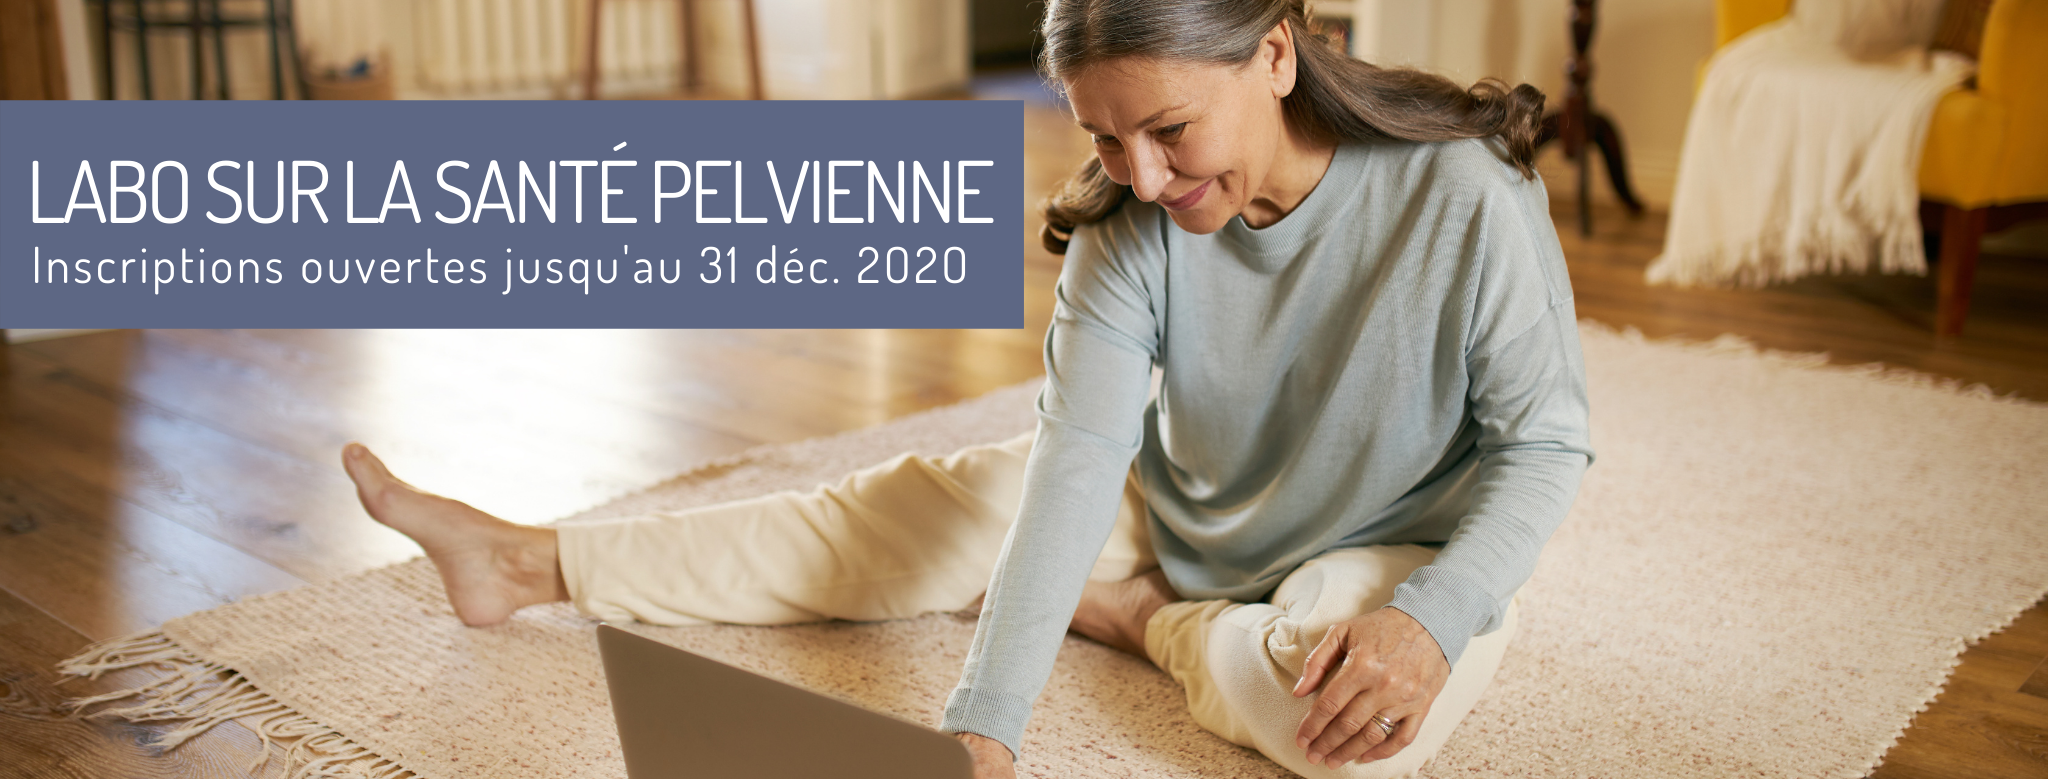 CoverWeb - yoga sante pelvienne 15sept